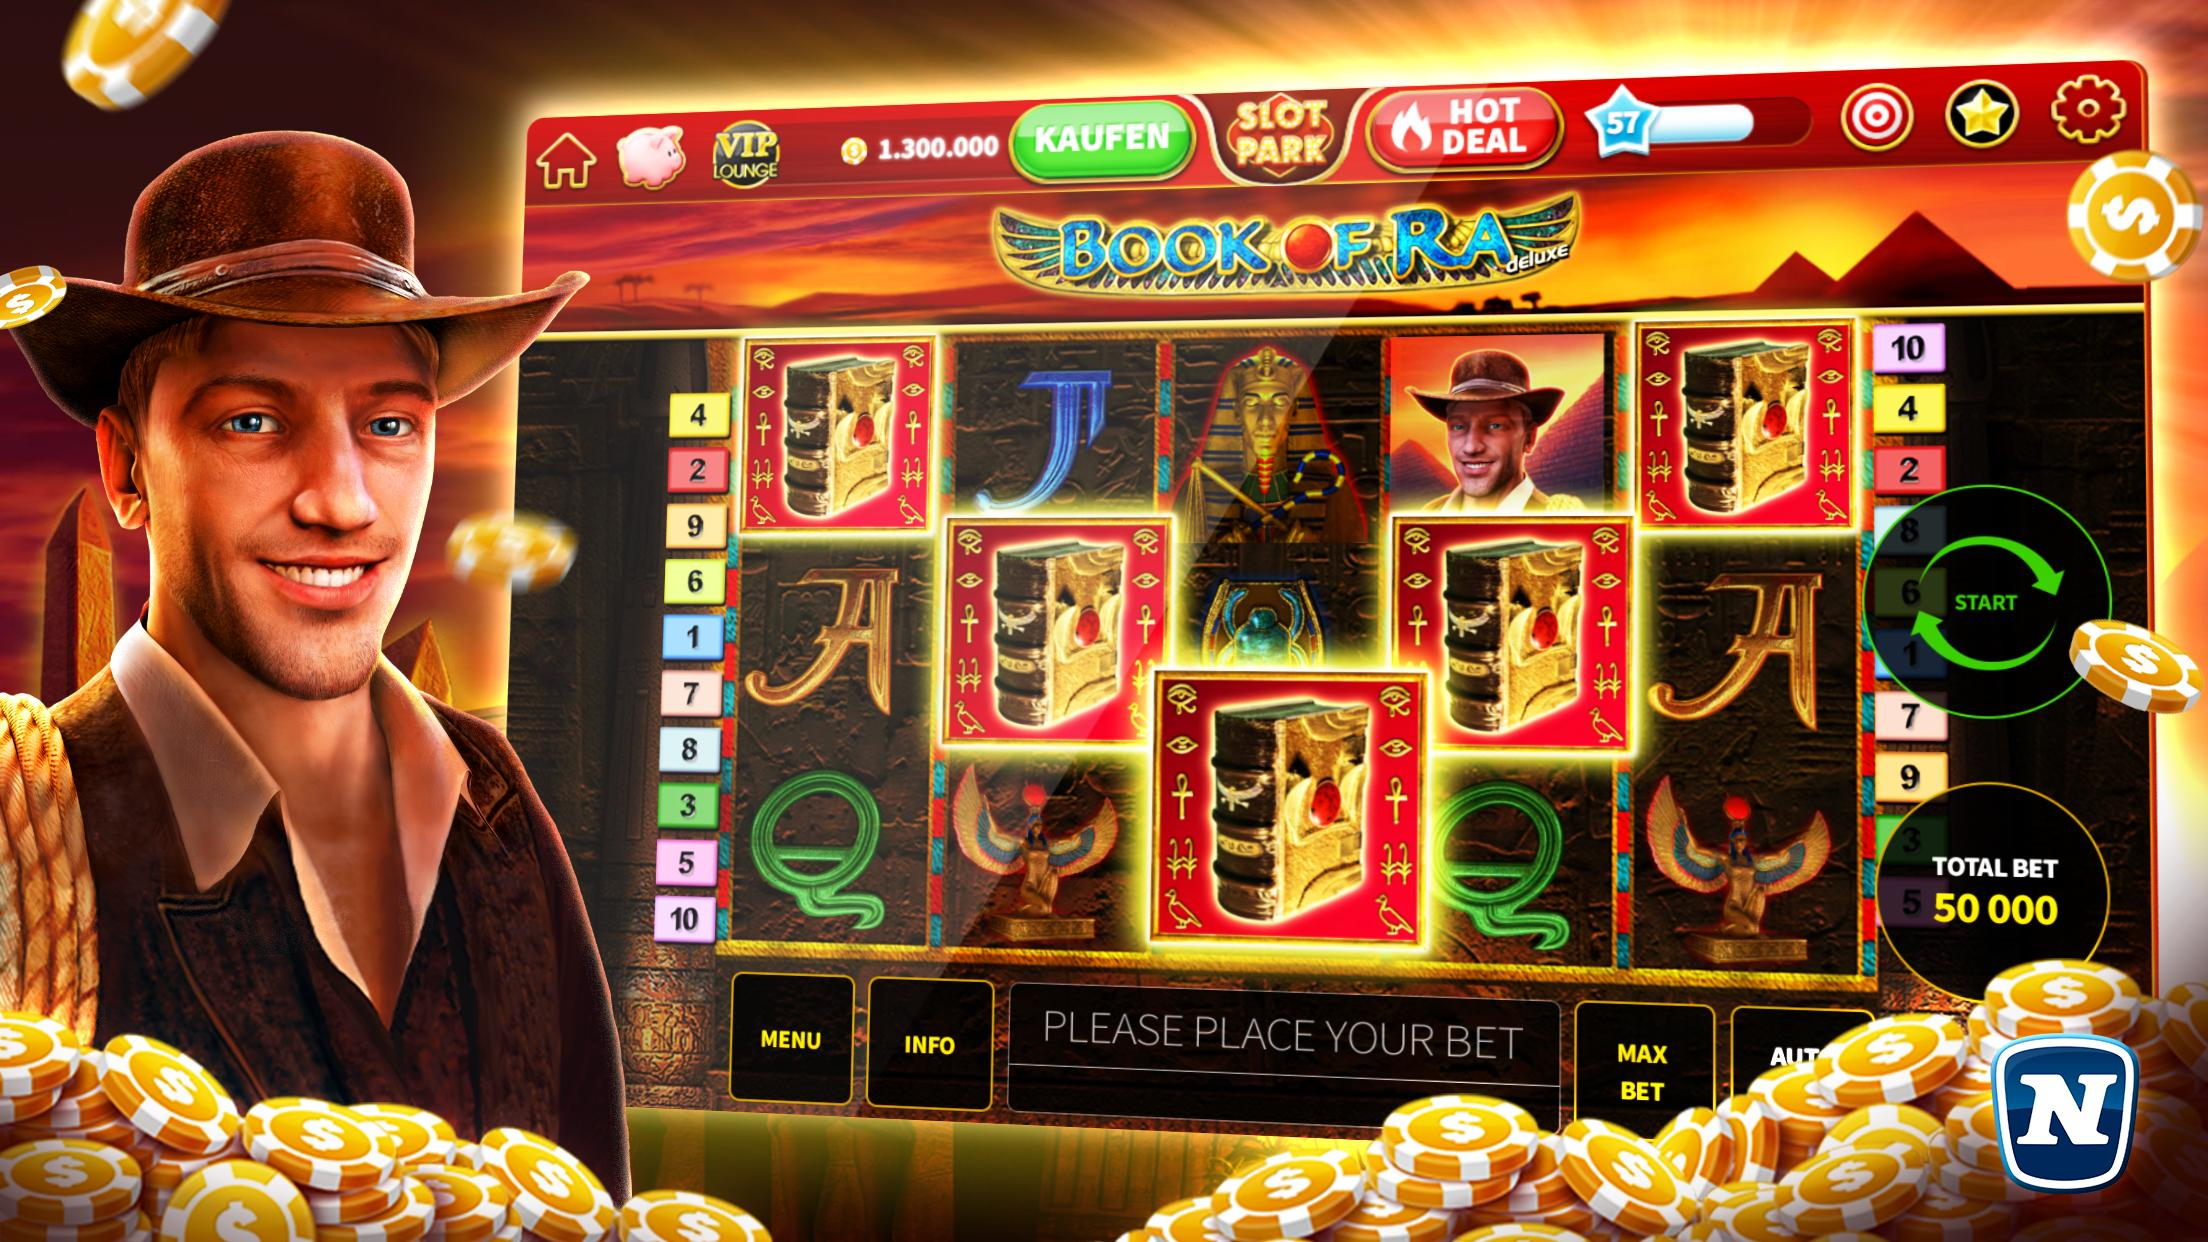 Slotpark Online Casino Games & Free Slot Machine 3.21.1 Screenshot 7